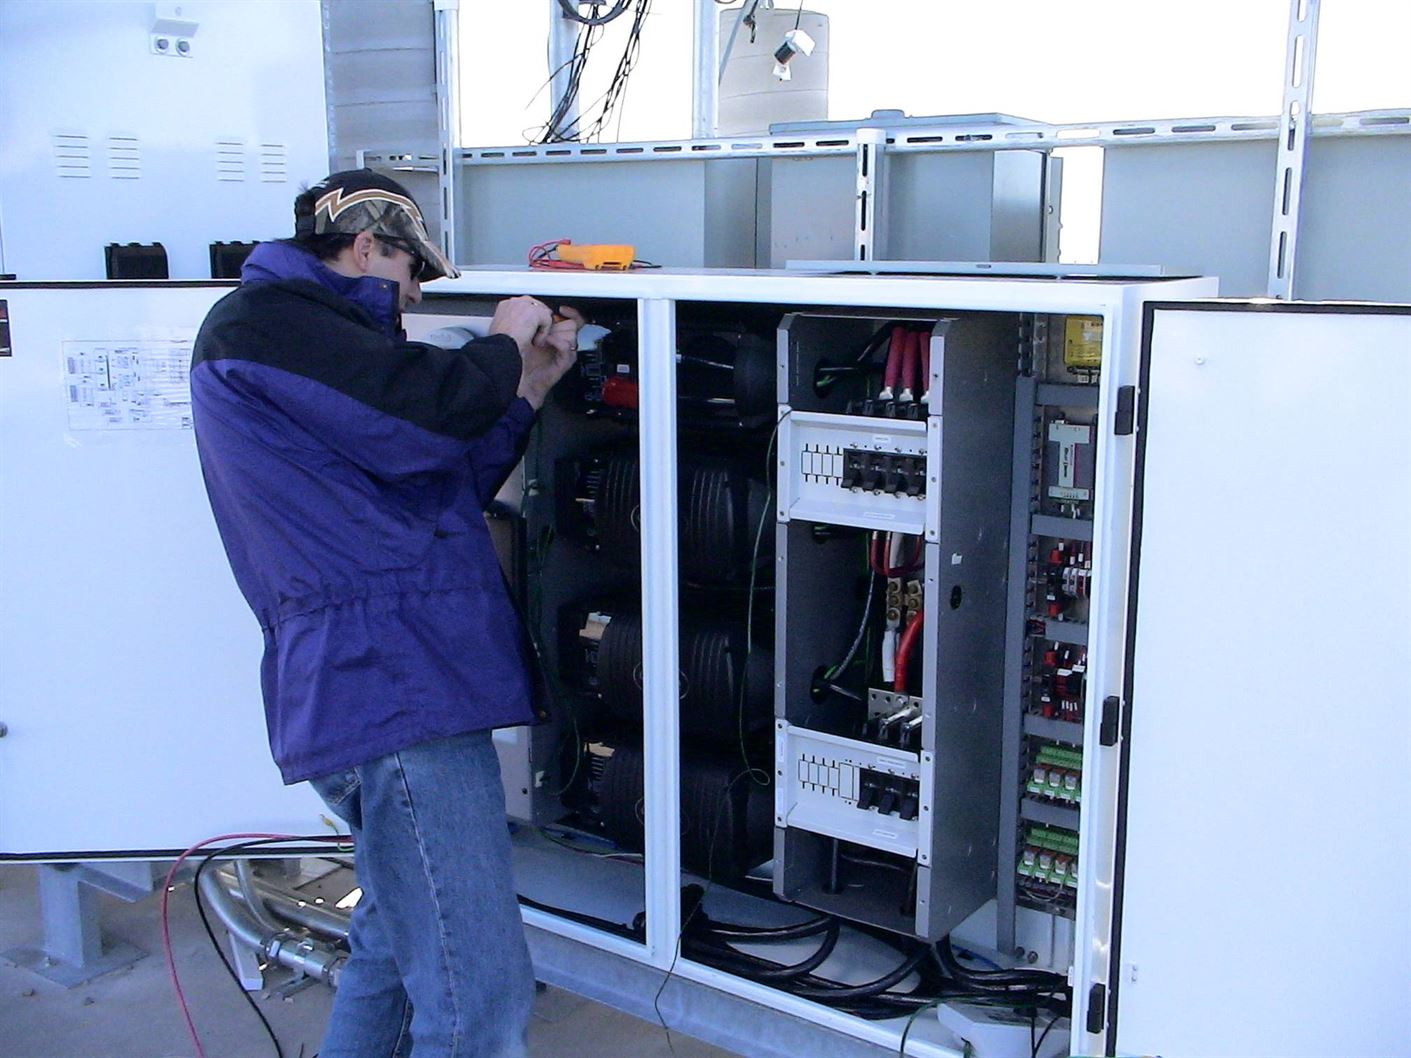 Electrical Power System & Troubleshooting